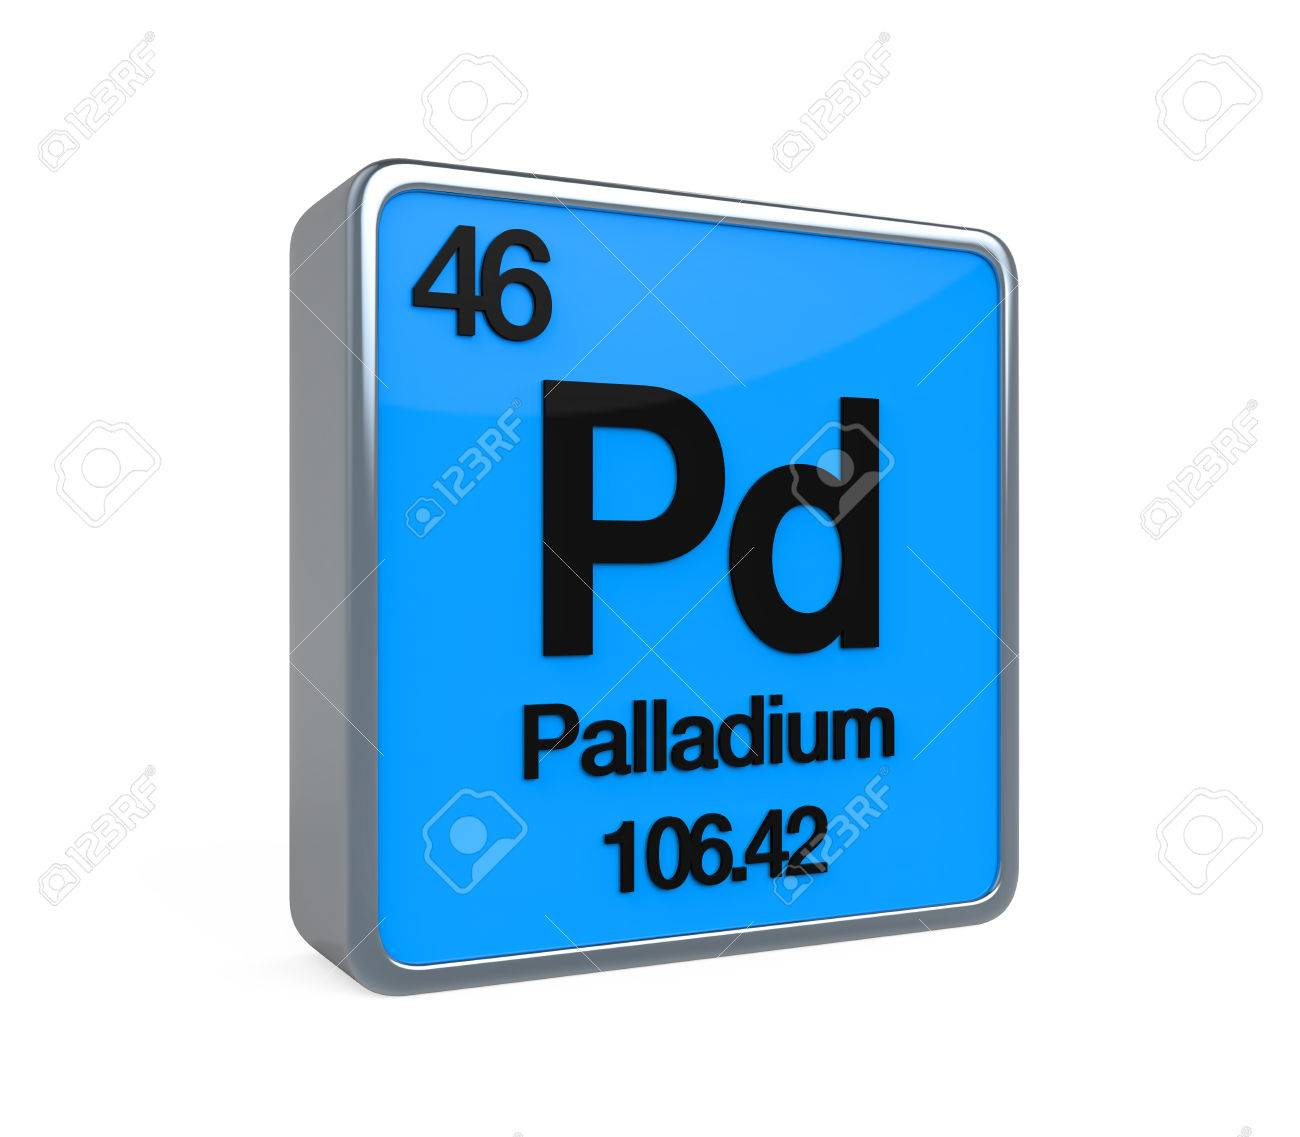 Palladium periodic table image collections periodic table images pd element periodic table image collections periodic table images 144 palladium stock vector illustration and royalty gamestrikefo Choice Image